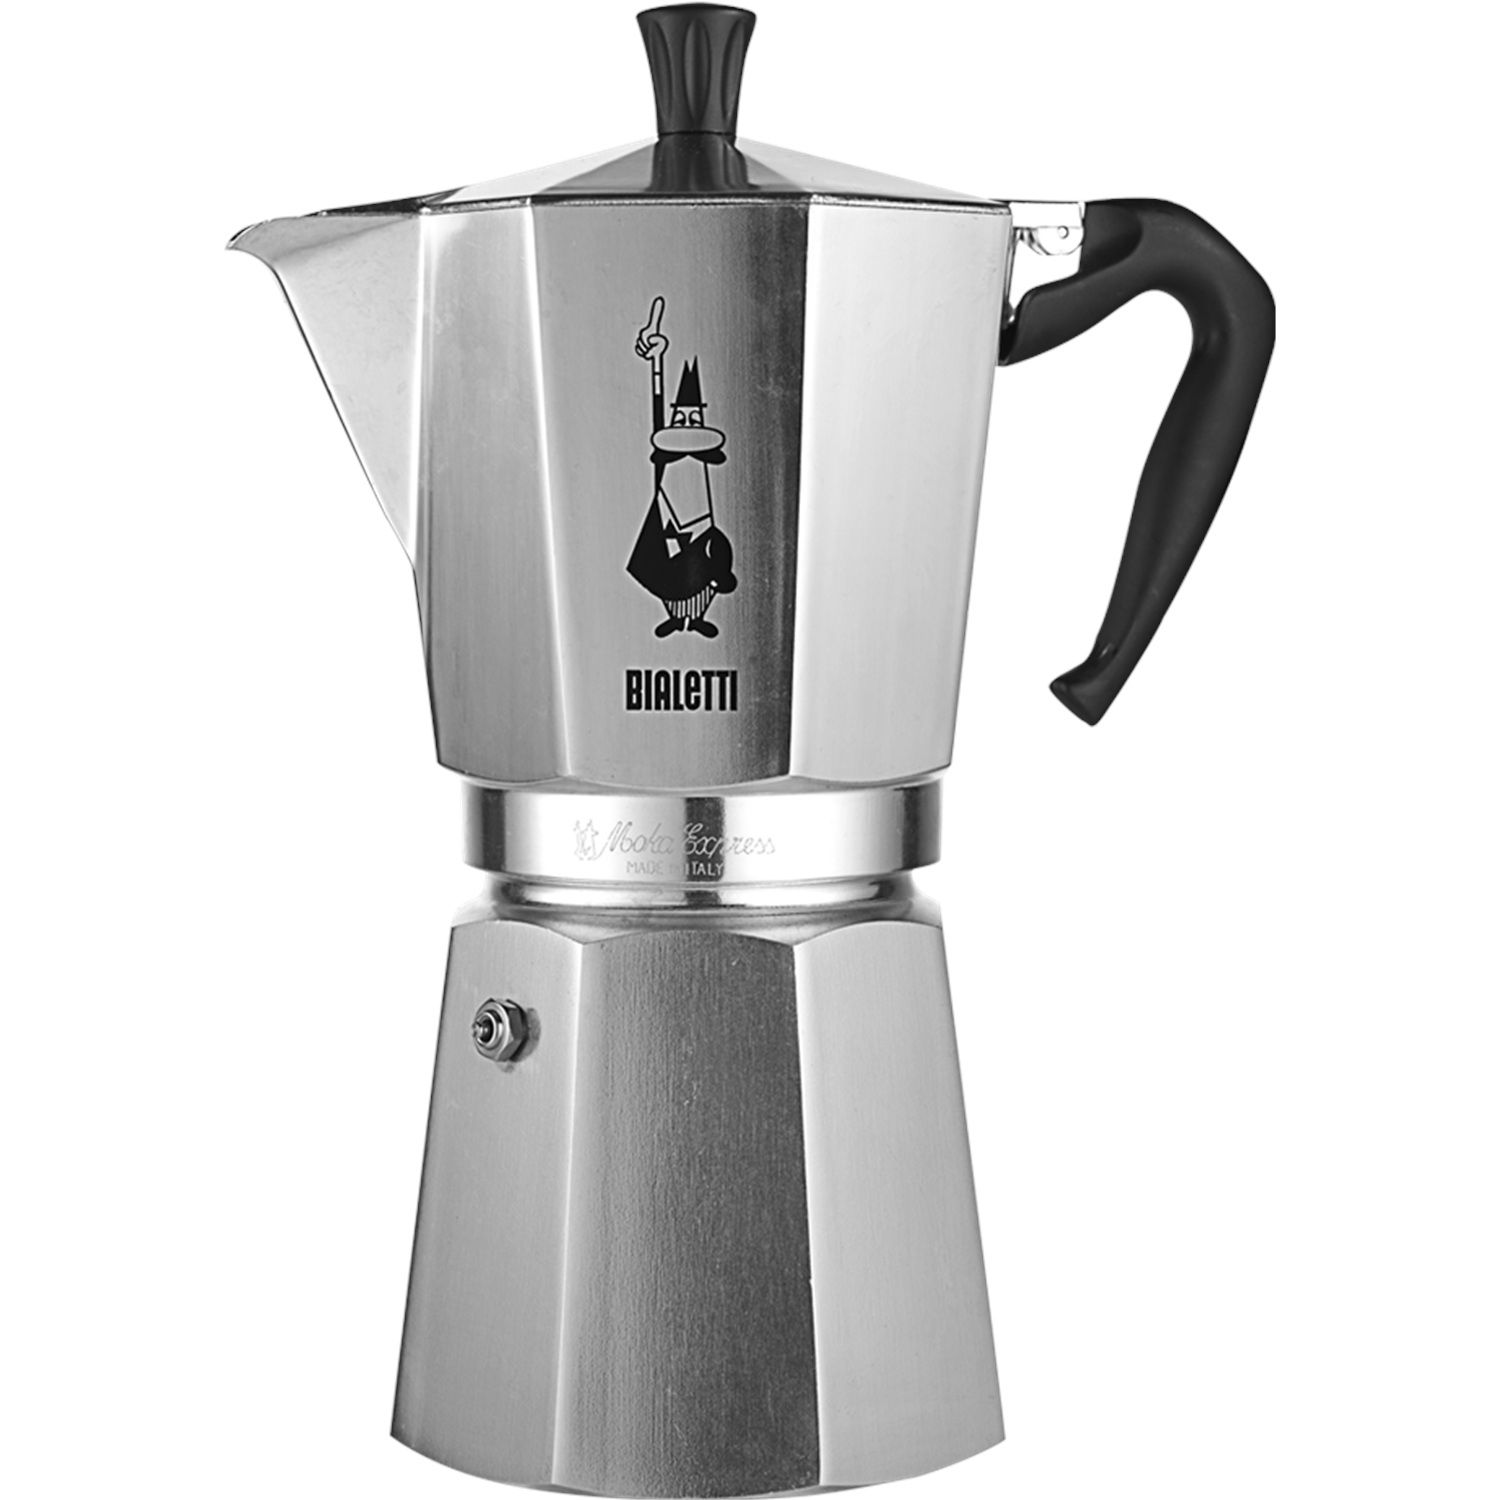 Coffee maker by Bialetti (con imágenes) Cafetera